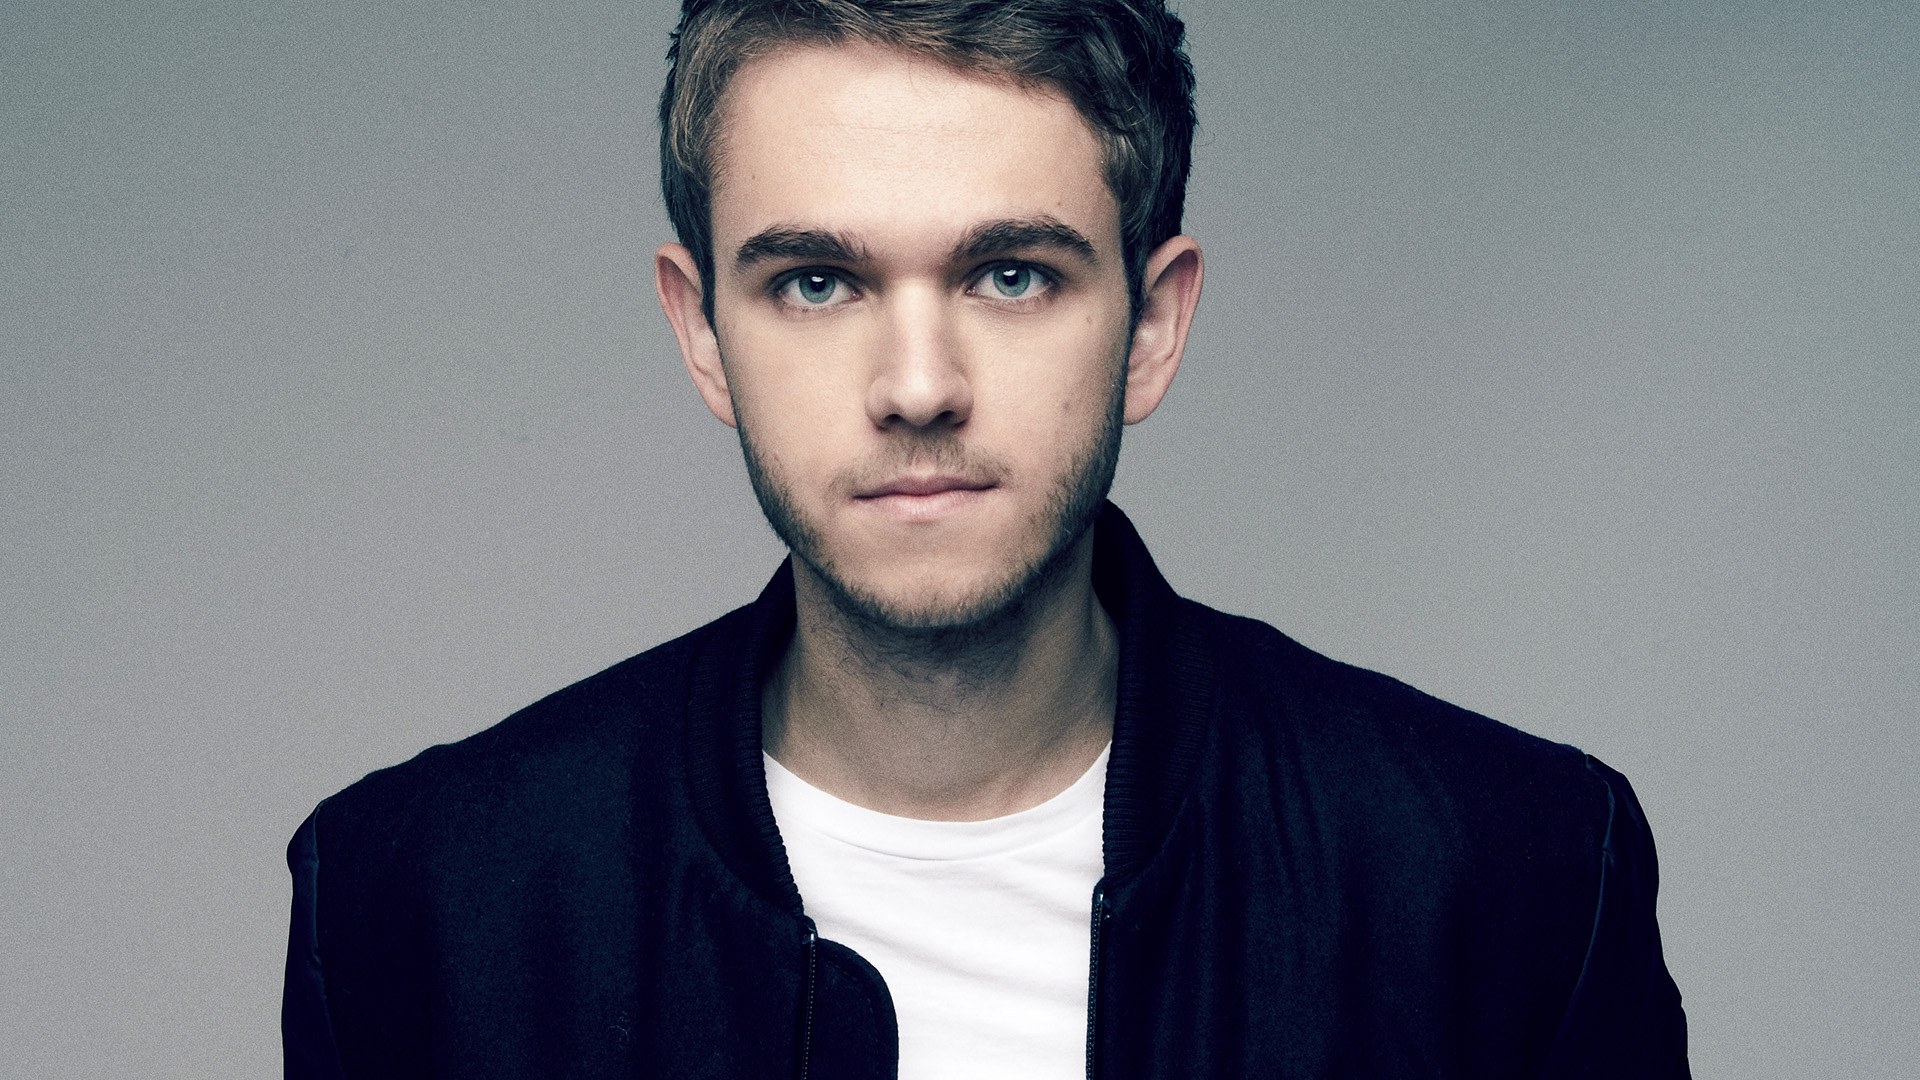 I Want You To Know av Zedd